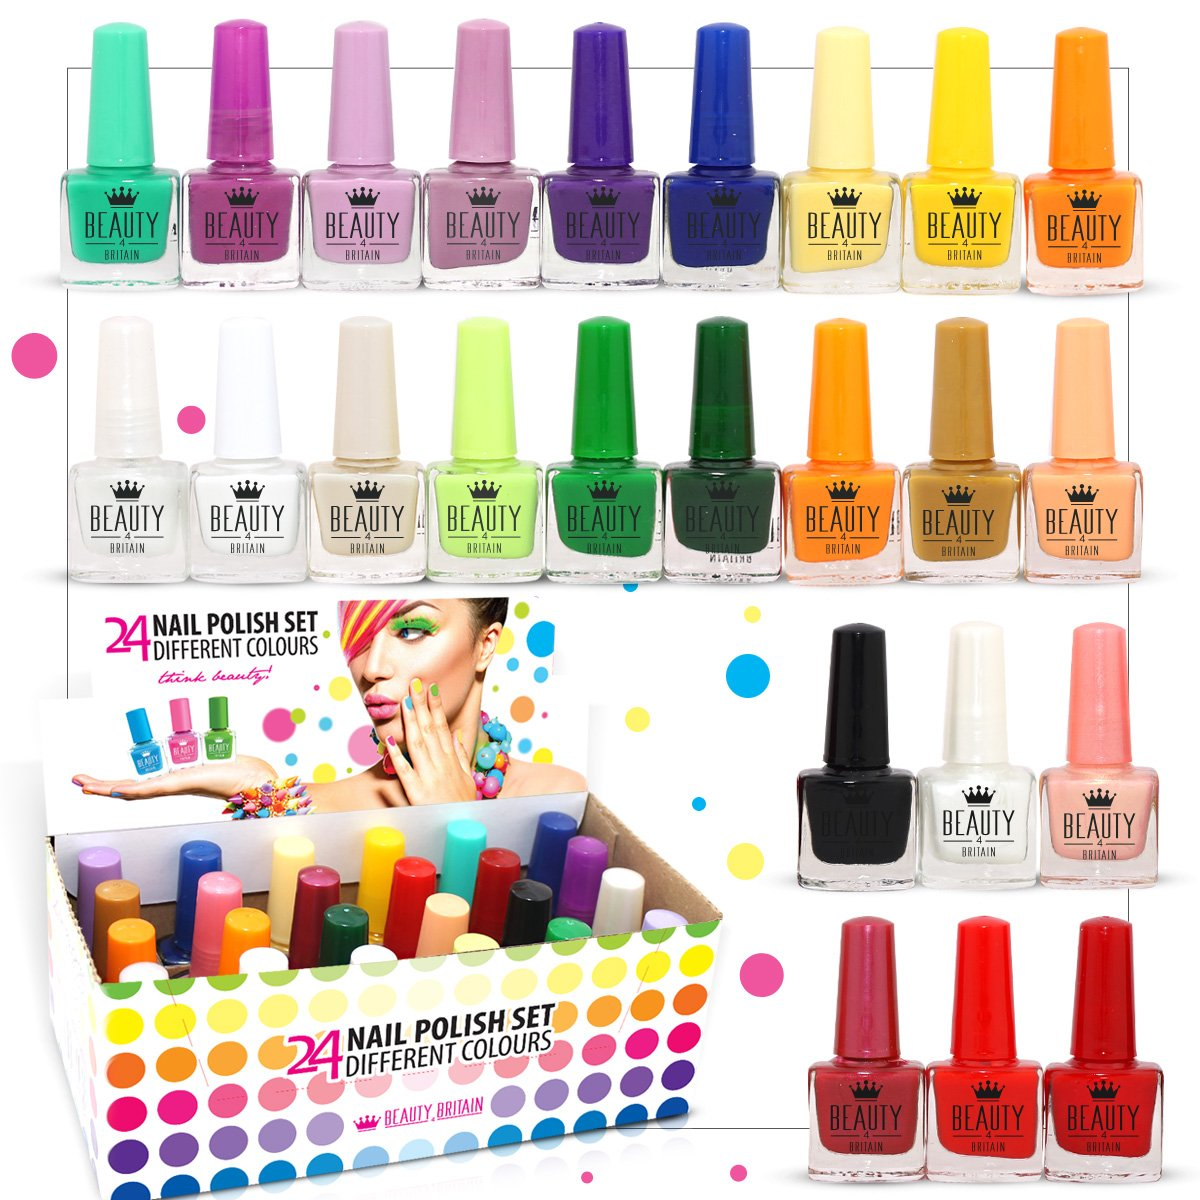 24 x NAIL POLISH VARNISH (SET B) 24 DIFFERENT COLOURS THE BEST GIFT UK Beauty4Britain